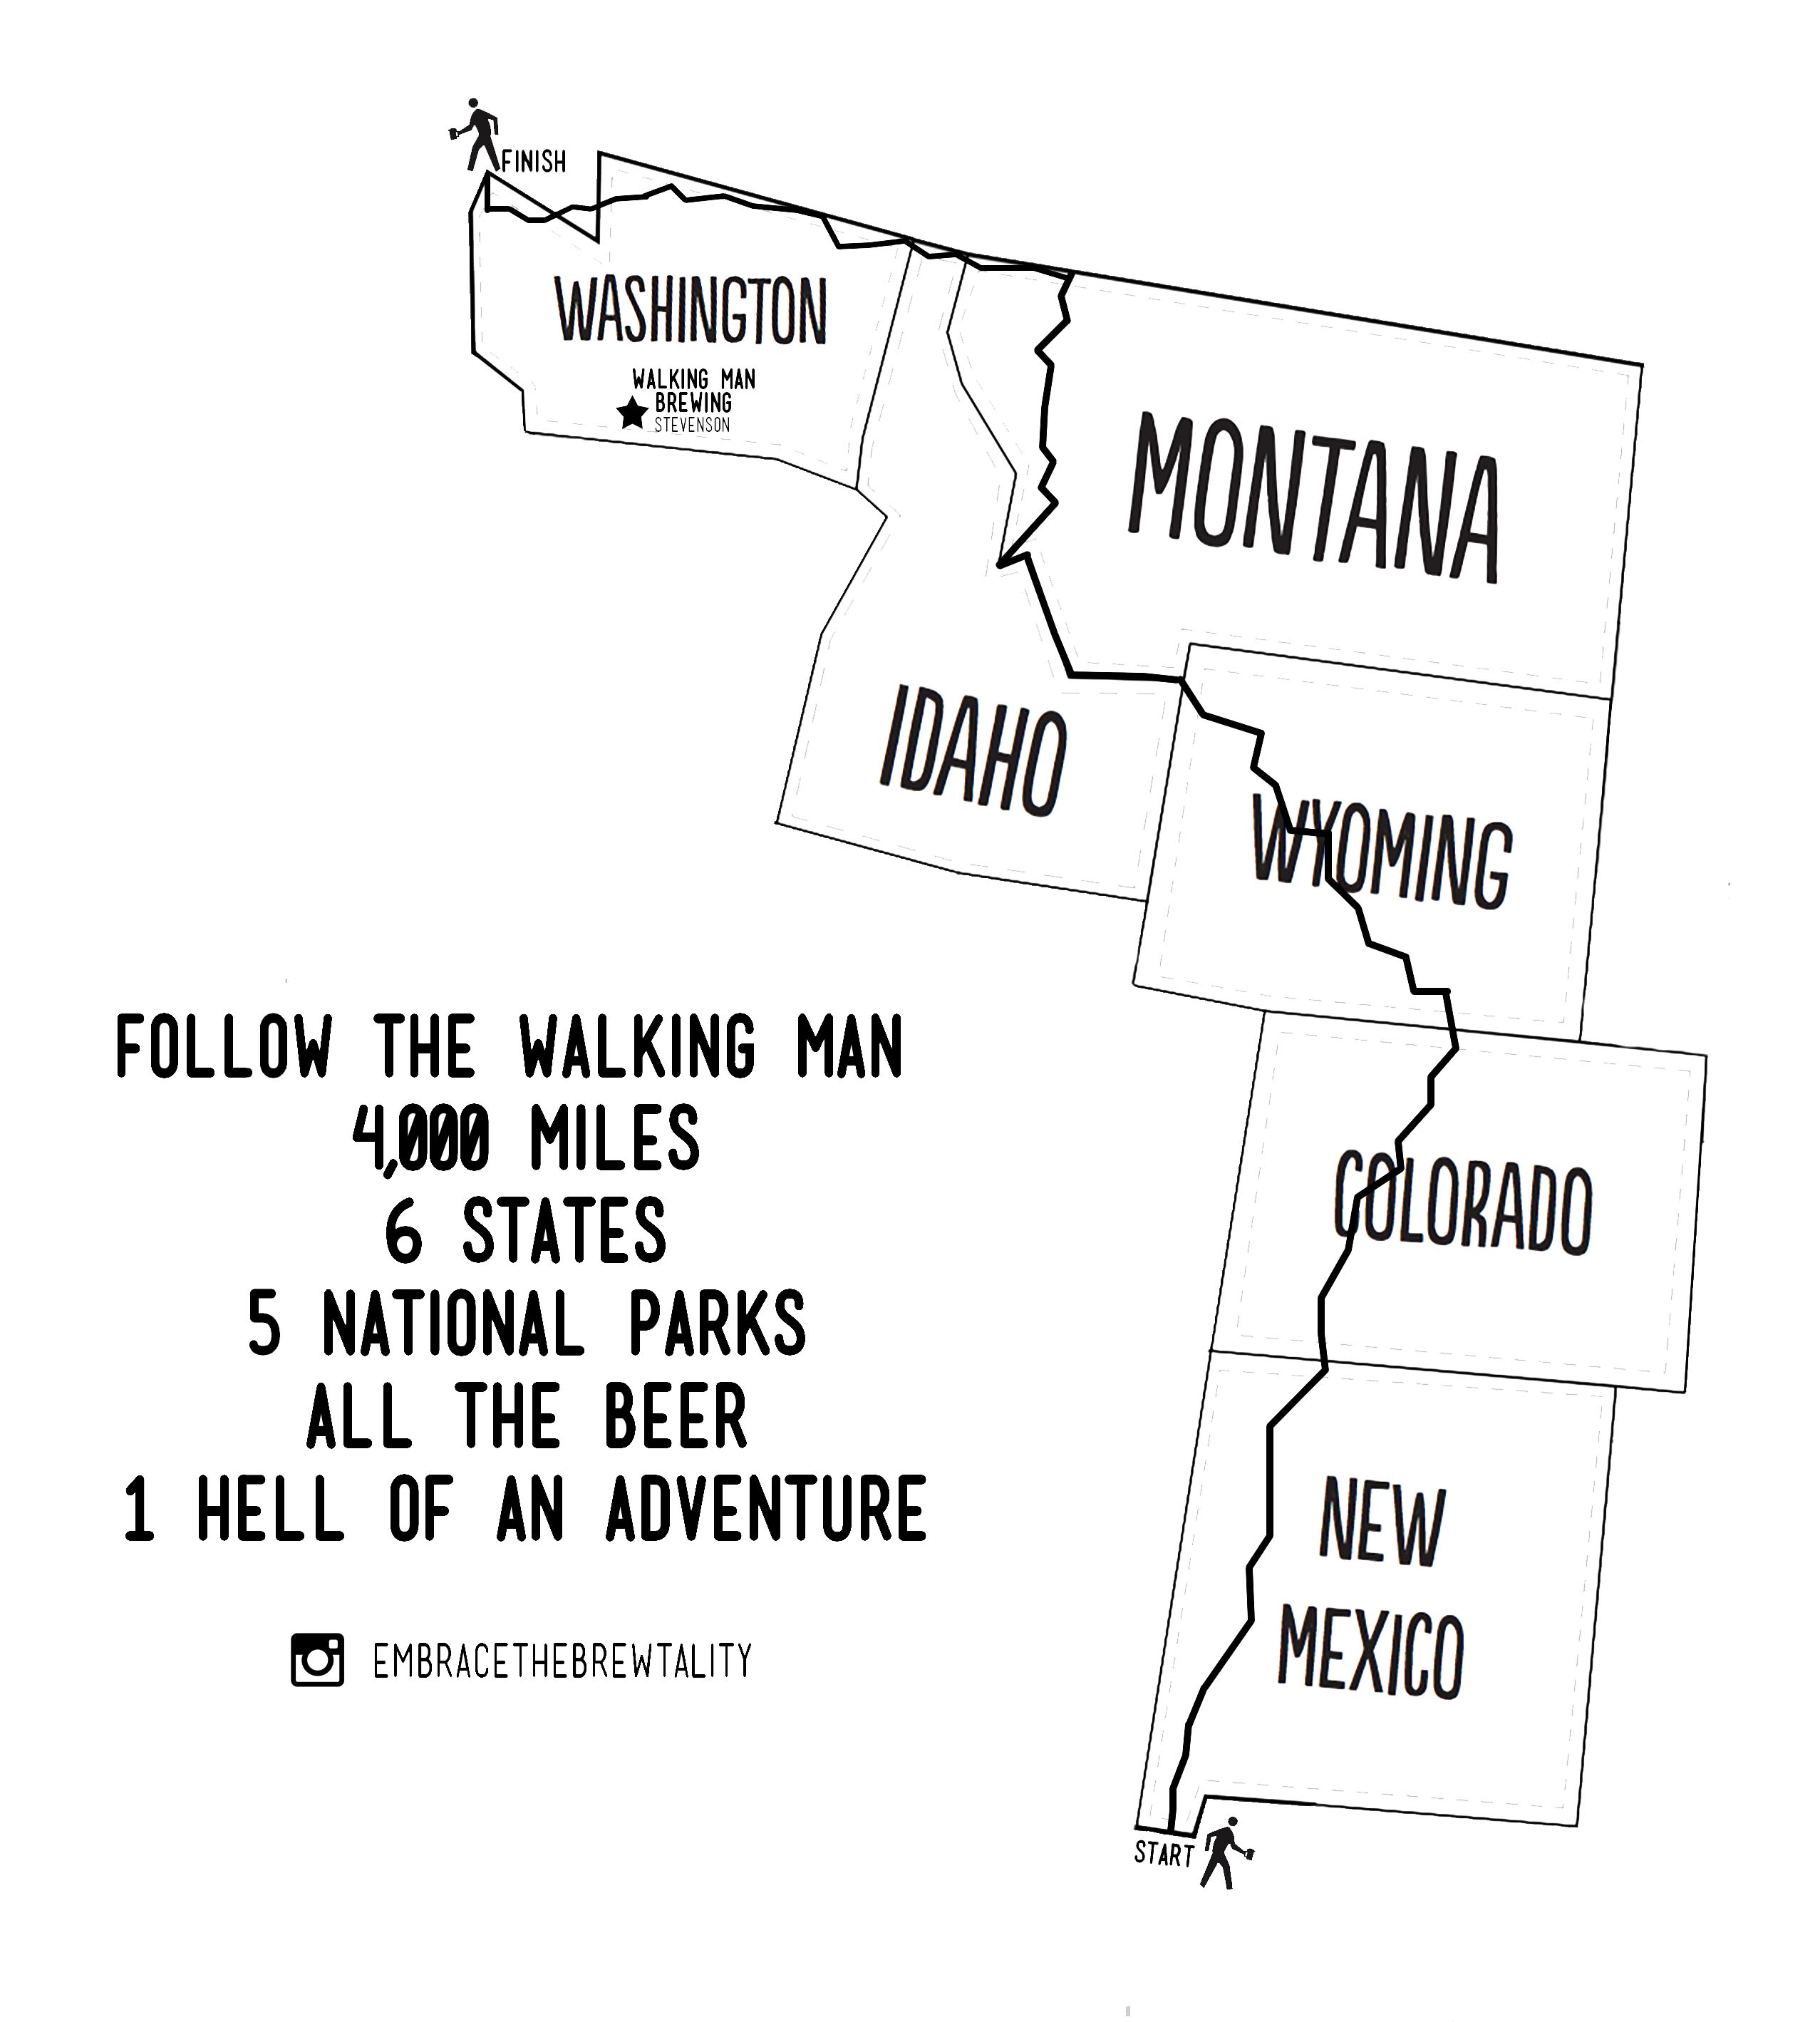 Walking Man Trail Map